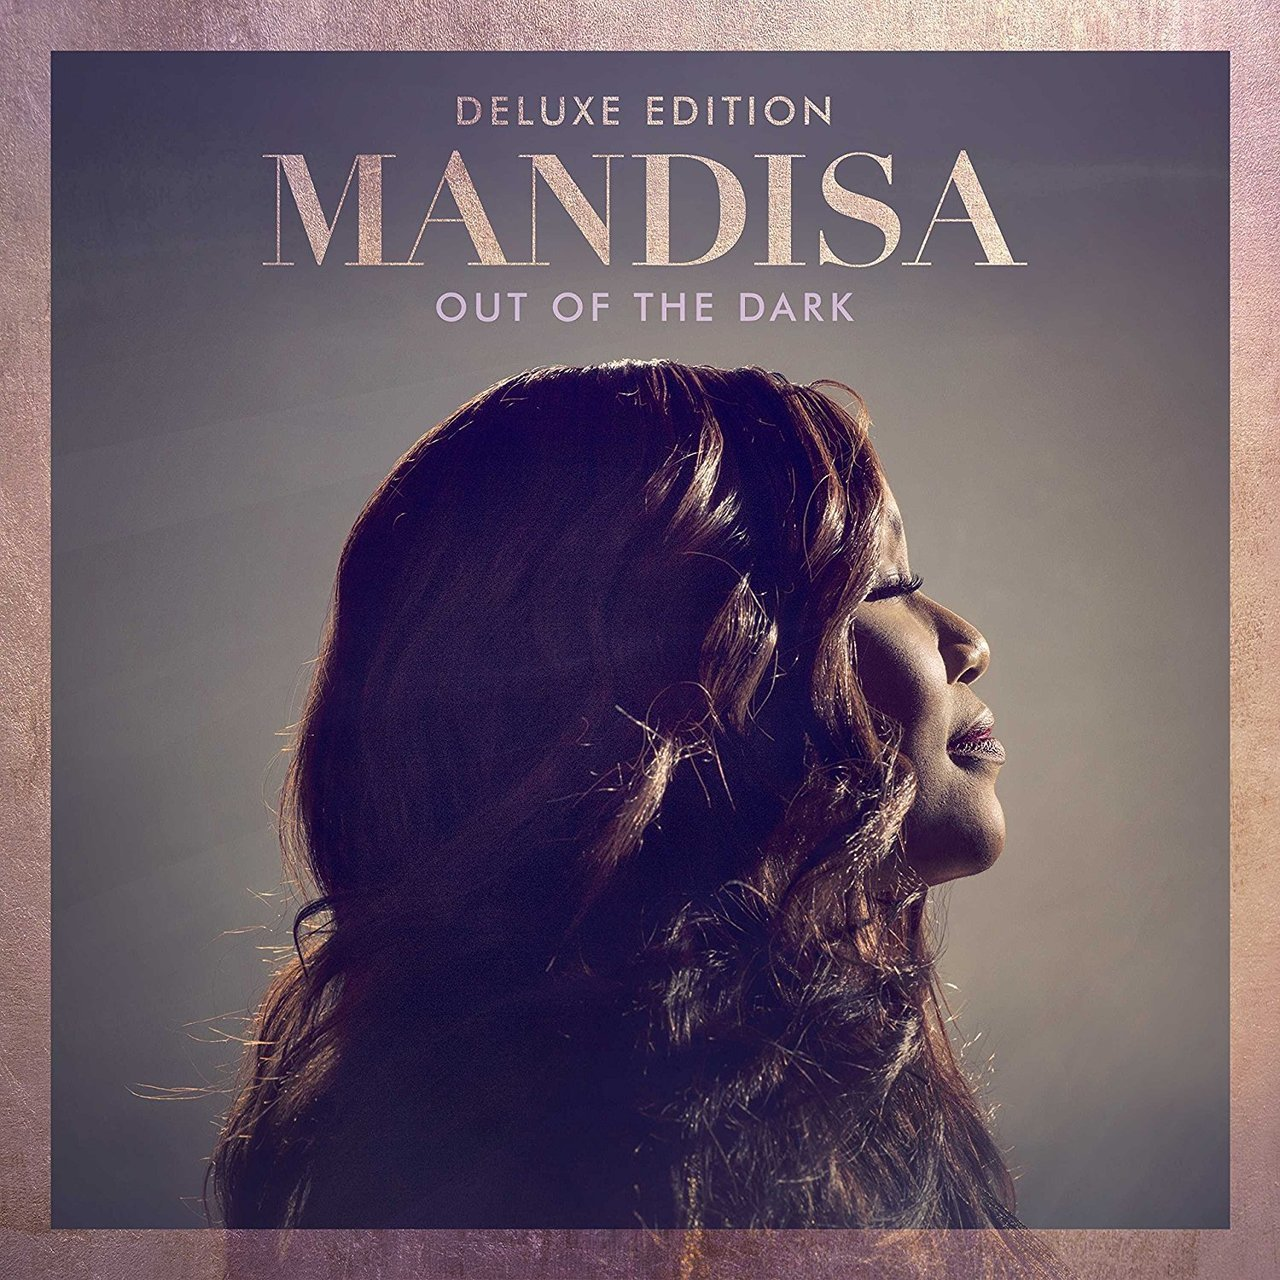 Mandisa   out of the dark  deluxe edition  cd